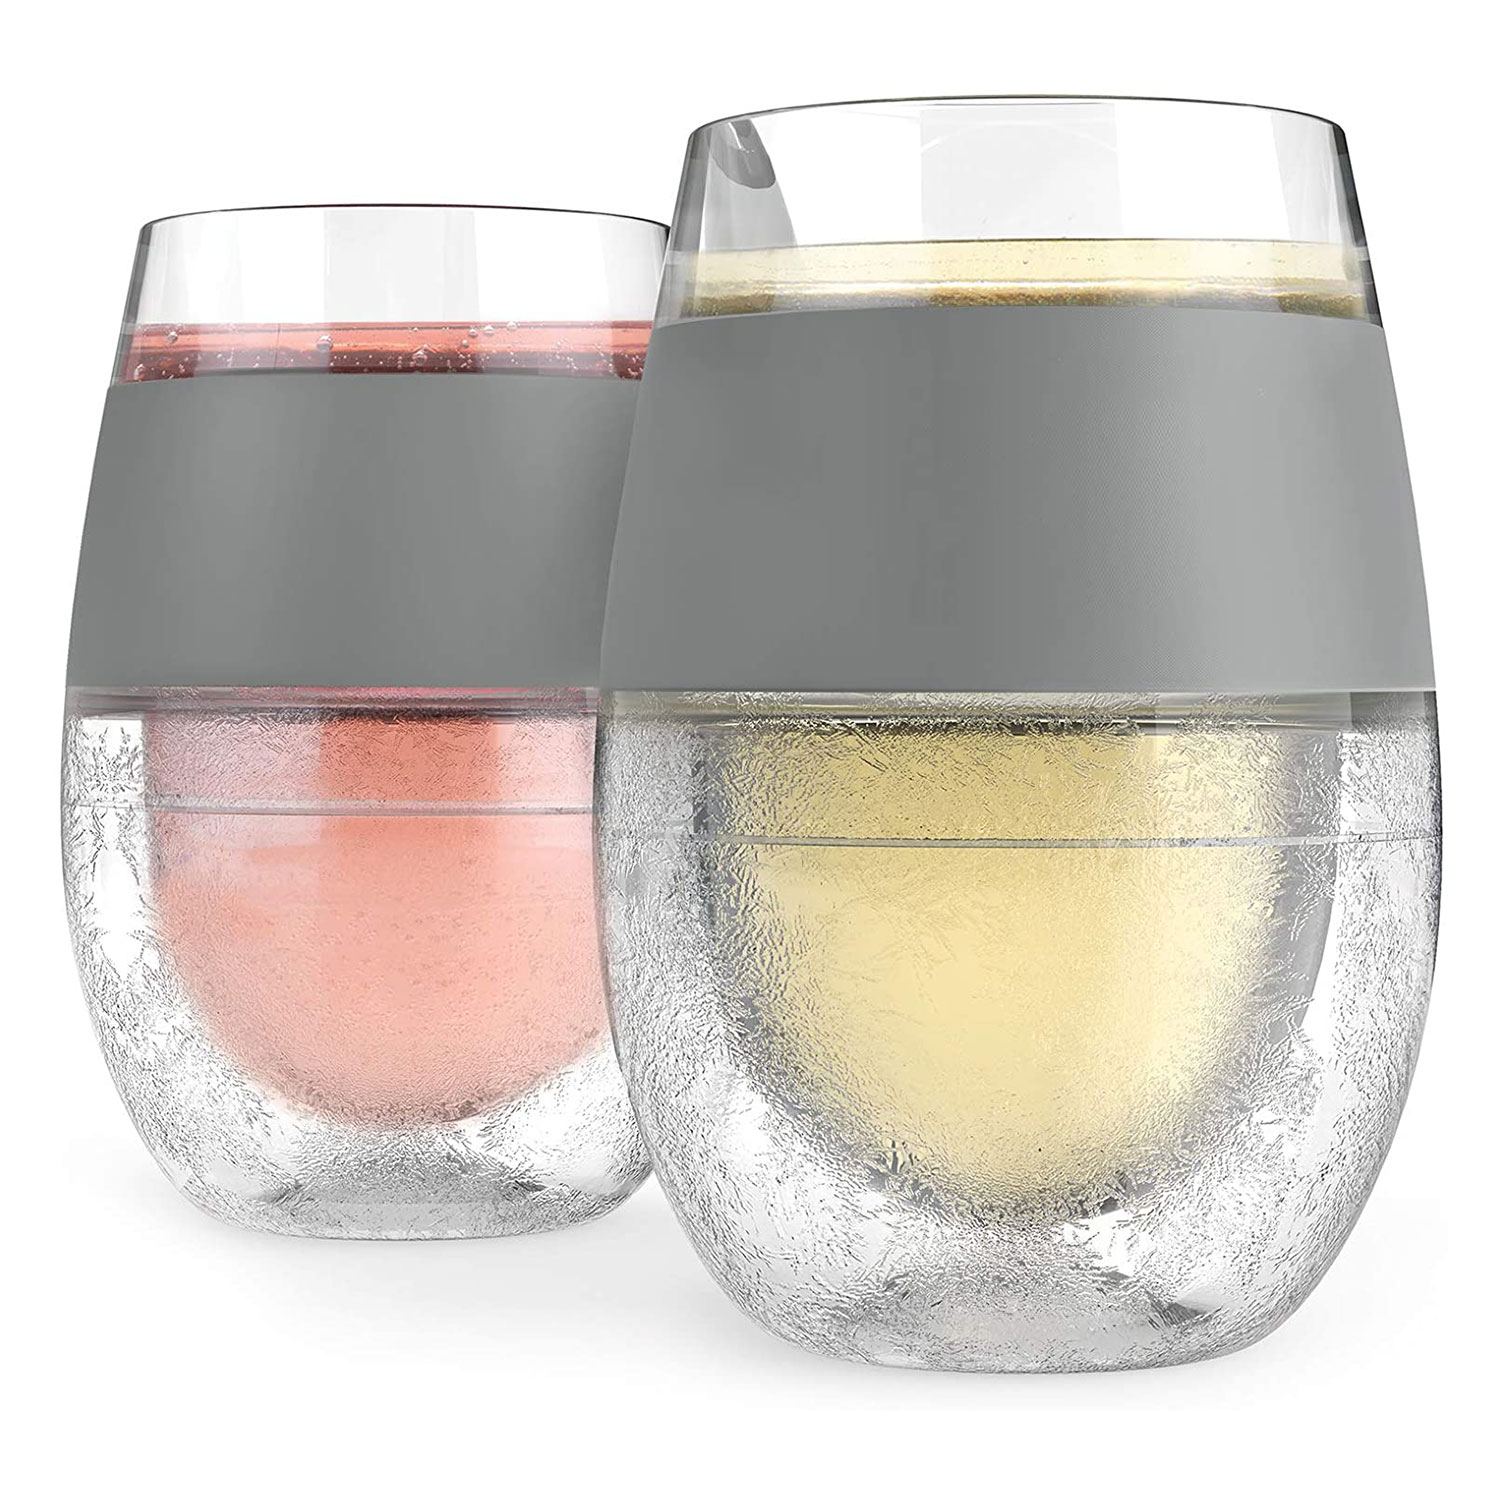 HOST Freeze Cooling Cup, Set of 2 Double Wall Insulated Freezer Chilling Tumbler